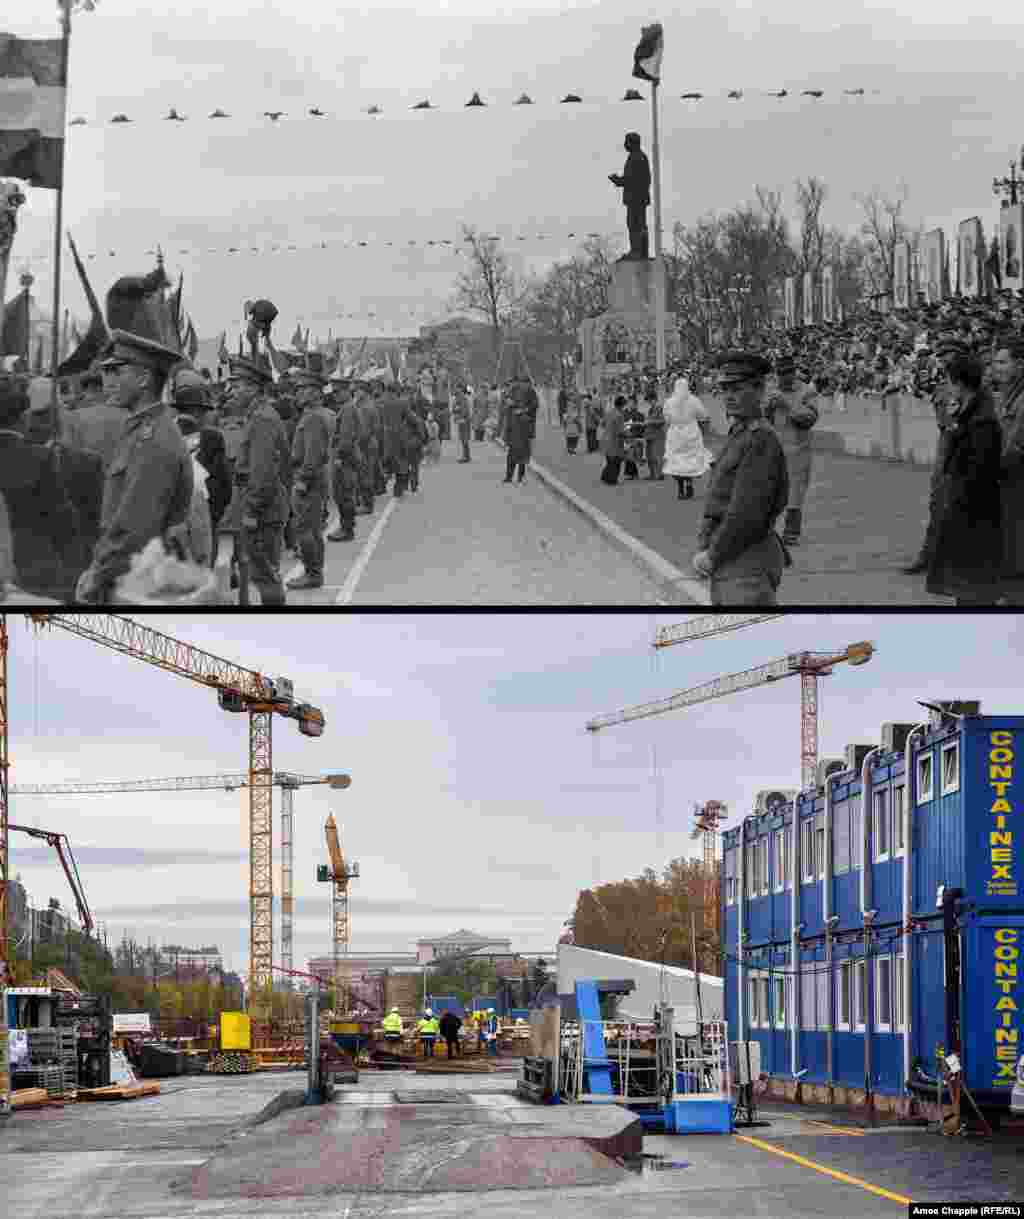 "Budapest 1956 - 2019 A 25-meter statue of Josef Stalin in Budapest (top) that communist officials called a ""gift"" to the dictator from the Hungarian people. The historic photo was shot five months before the monument was beheaded and dragged through the streets. In 2006, a sculpture commemorating the events of 1956 was built on the site. The memorial is just visible in the 2019 photo covered with a tarpaulin. The area is now undergoing a massive, contentious redevelopment.1956 photo: Fortepan/Adomanyazo"